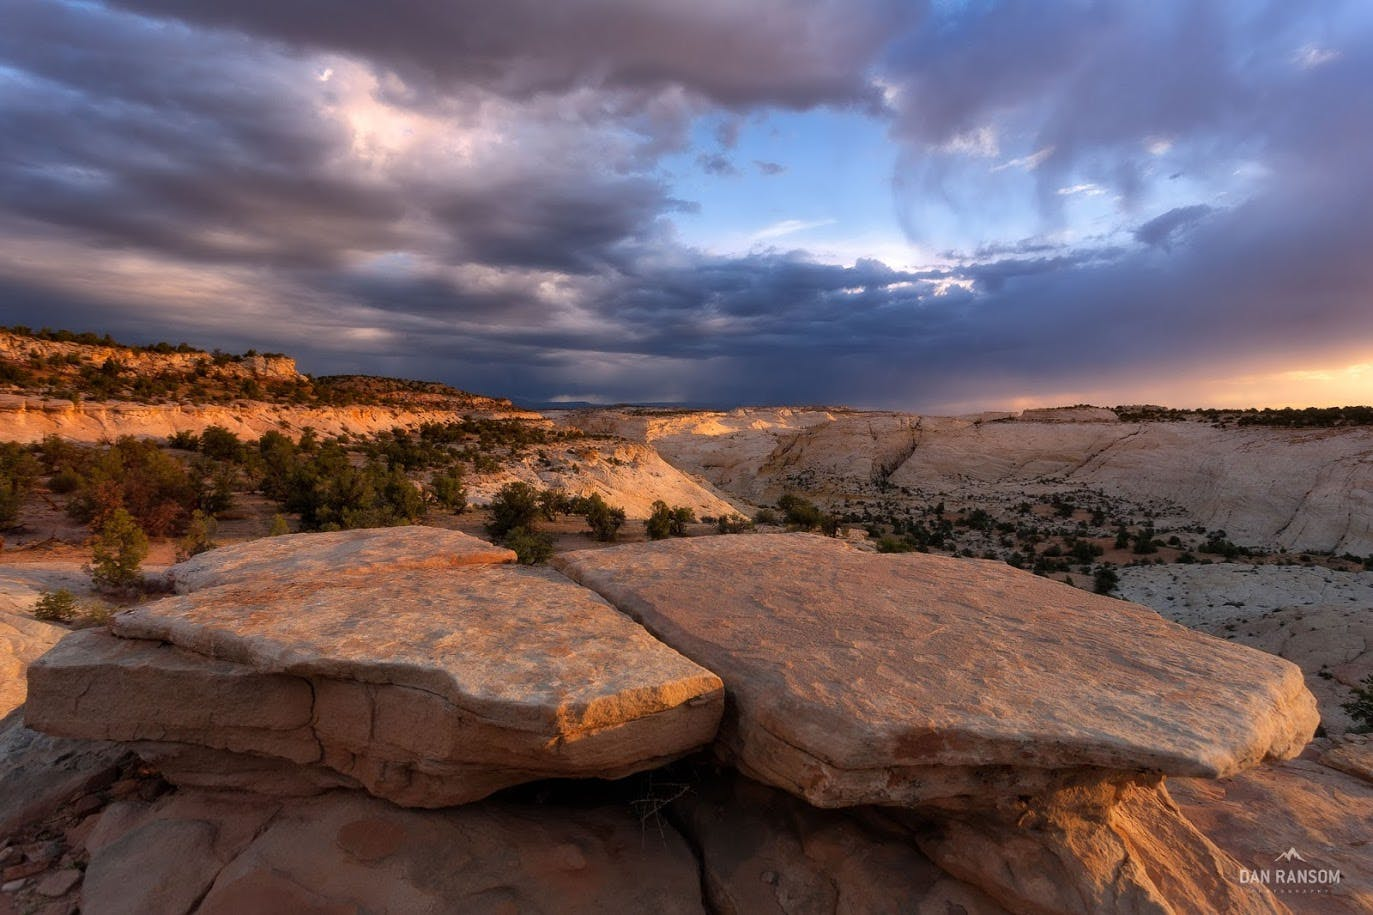 Moody skies over the Escalante landscape.